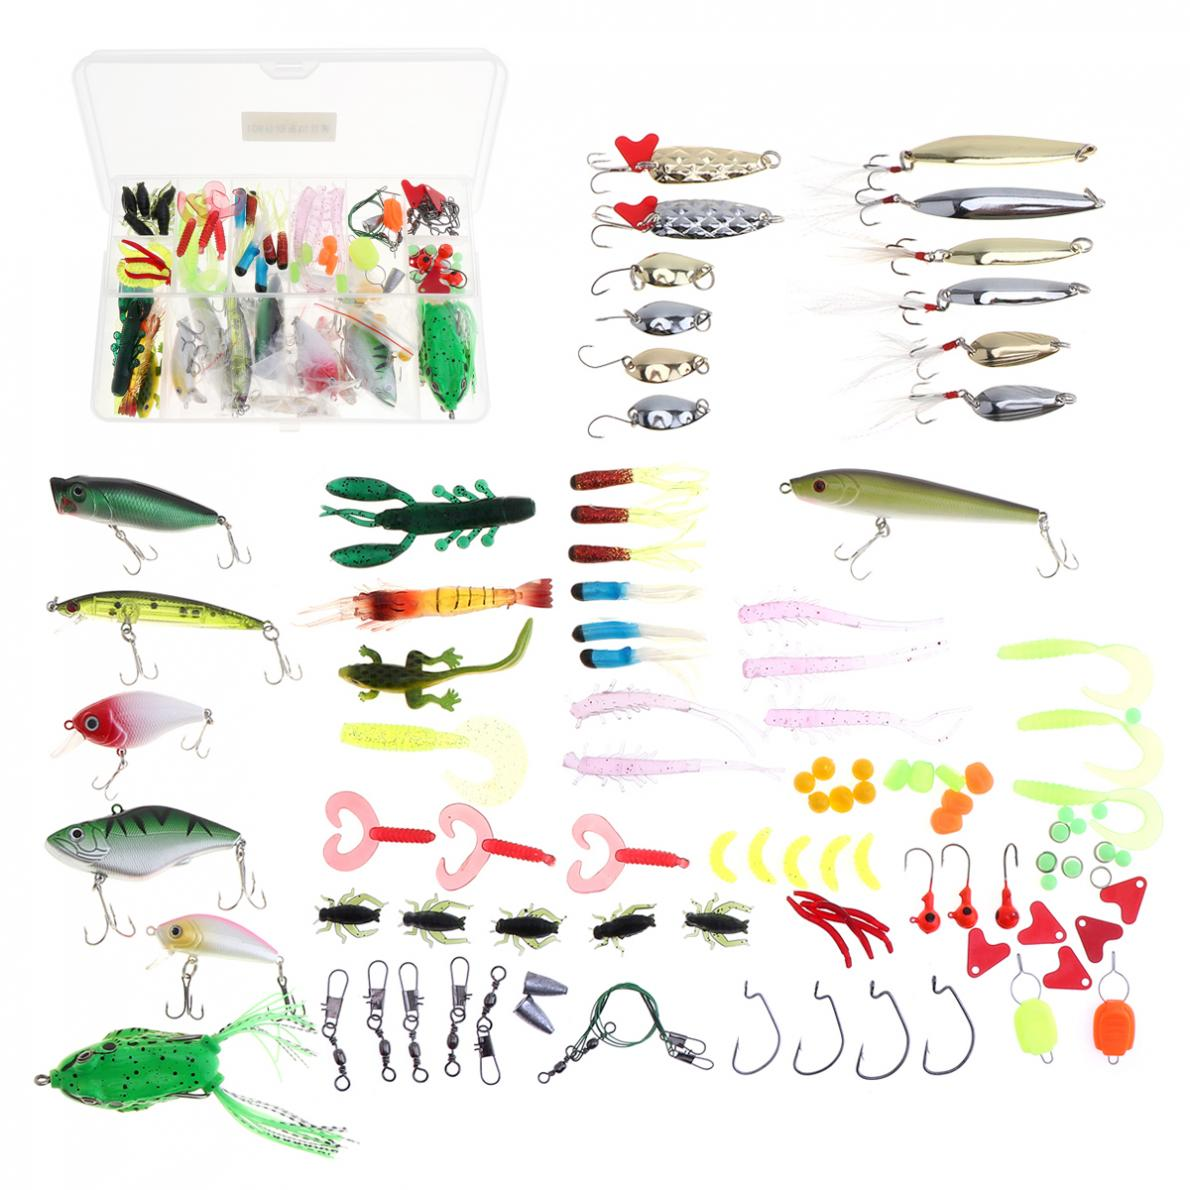 Weihe 106pcs Multi Fishing Lure Kit Mixed Hard Soft Baits with Artificias Minnow Crank Popper VIB Sequins Wobbler Frog and Box fishing lure kit metal lure soft bait plastic lure wobbler frog lure free shipping